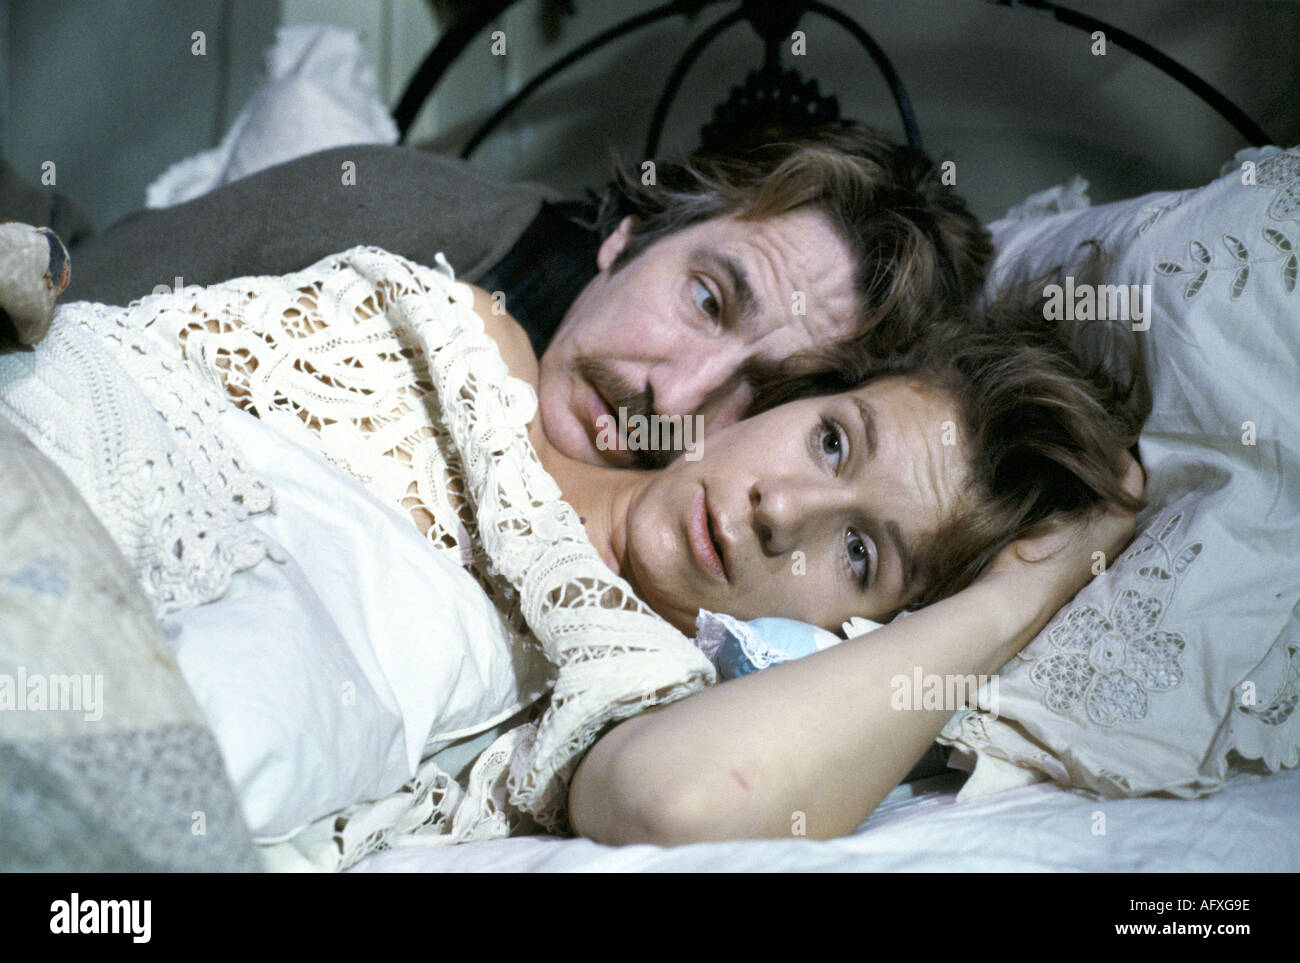 Alan Rickman Juliet Stevenson British actor actress in bed on film set of Truly Madly Deeply. 1991 HOMER SYKES - Stock Image